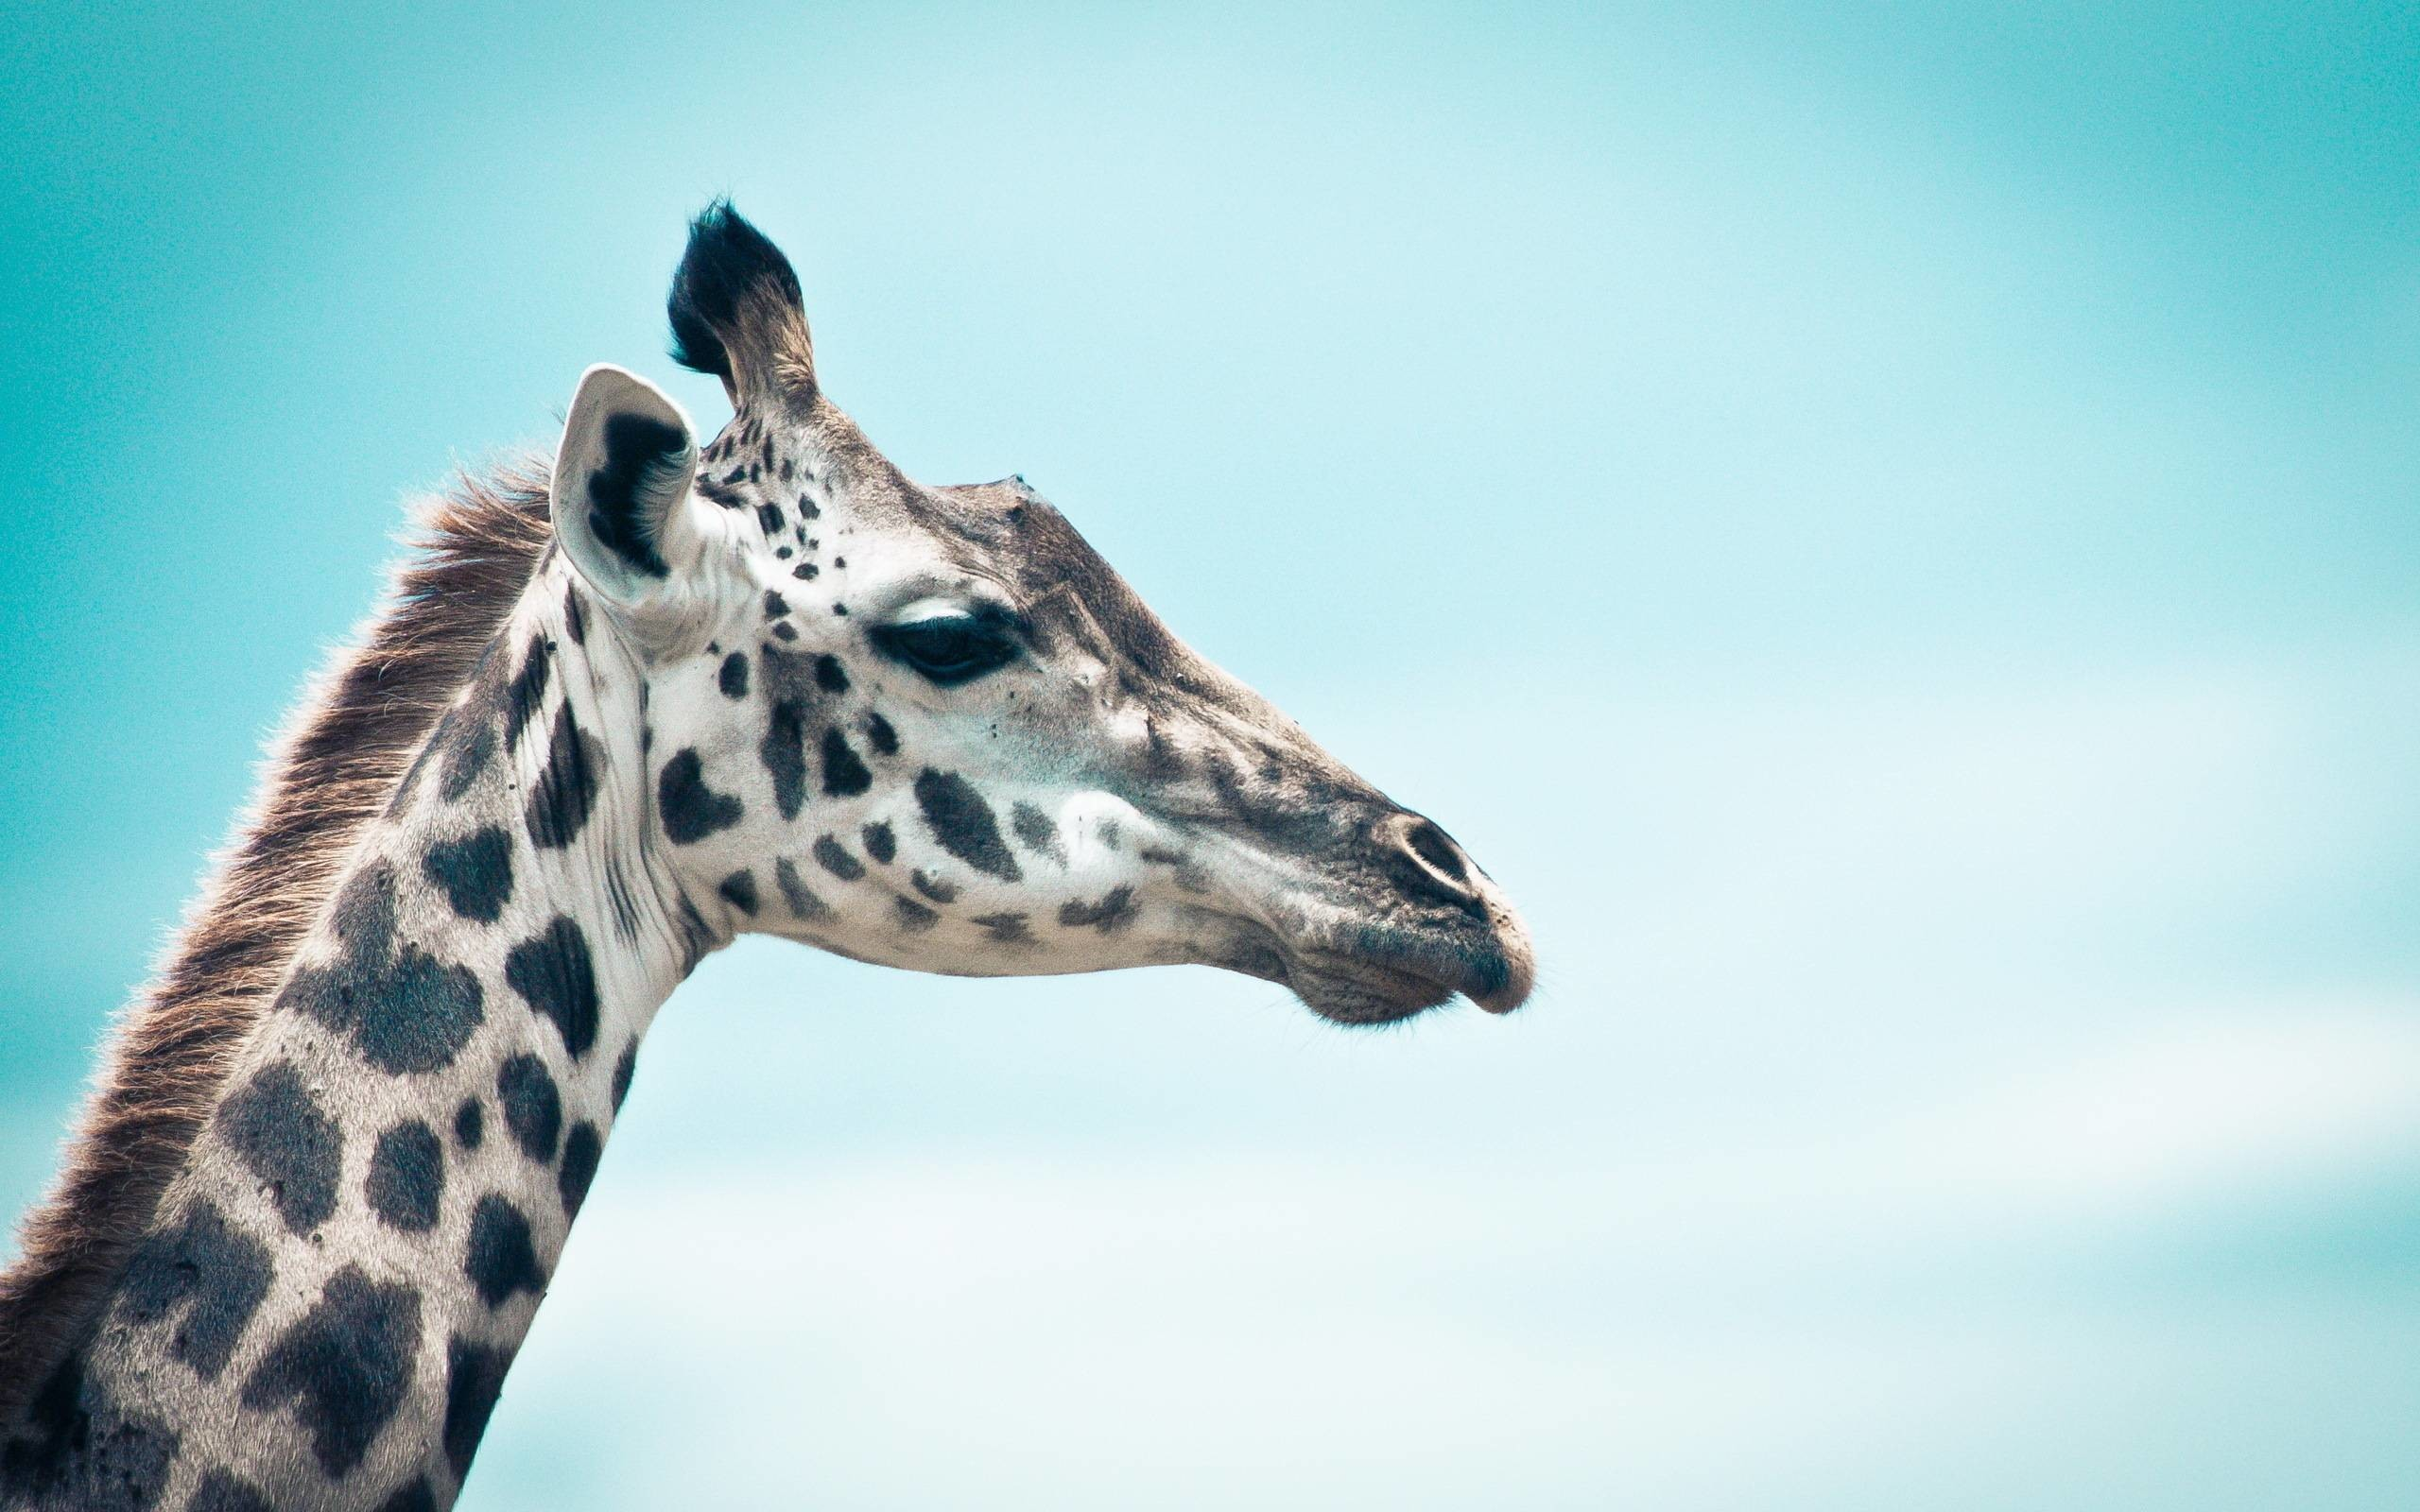 2560x1600 154 Giraffe Wallpapers | Giraffe Backgrounds Page 2